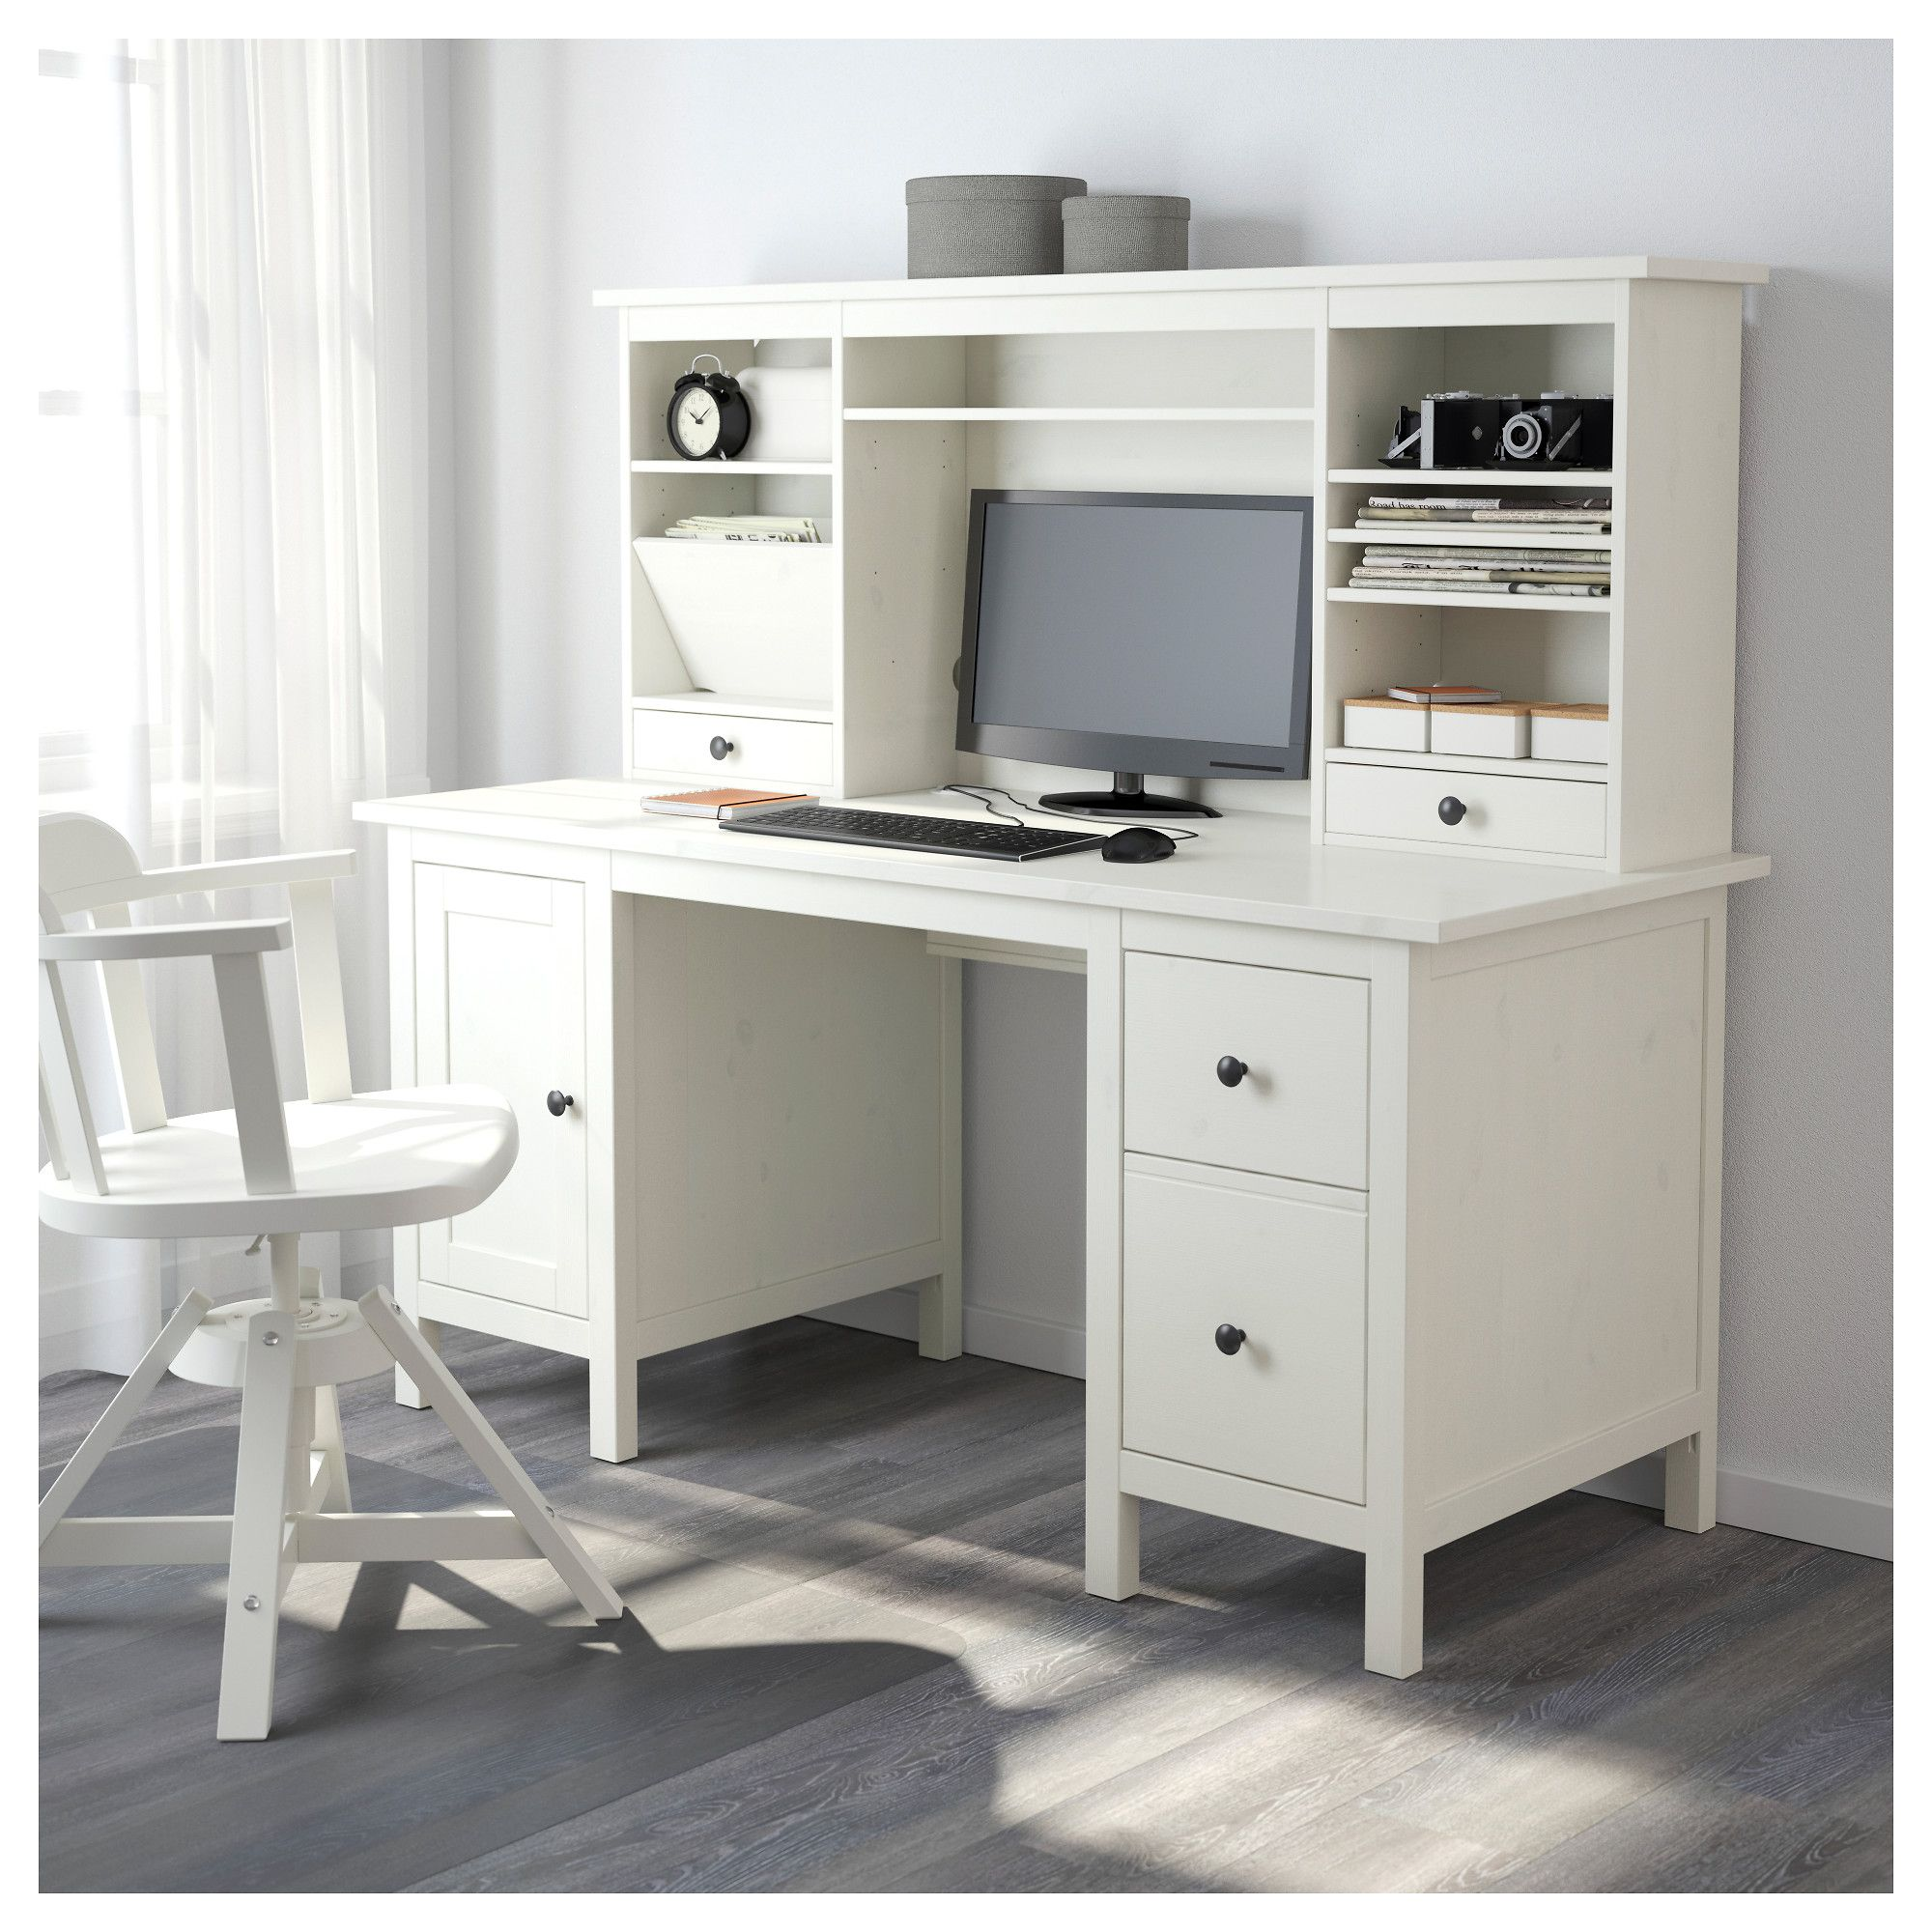 showy unusual ideas add white redoubtable hemnes storage bench design and on ikea secretary desk hutch downtown with unit